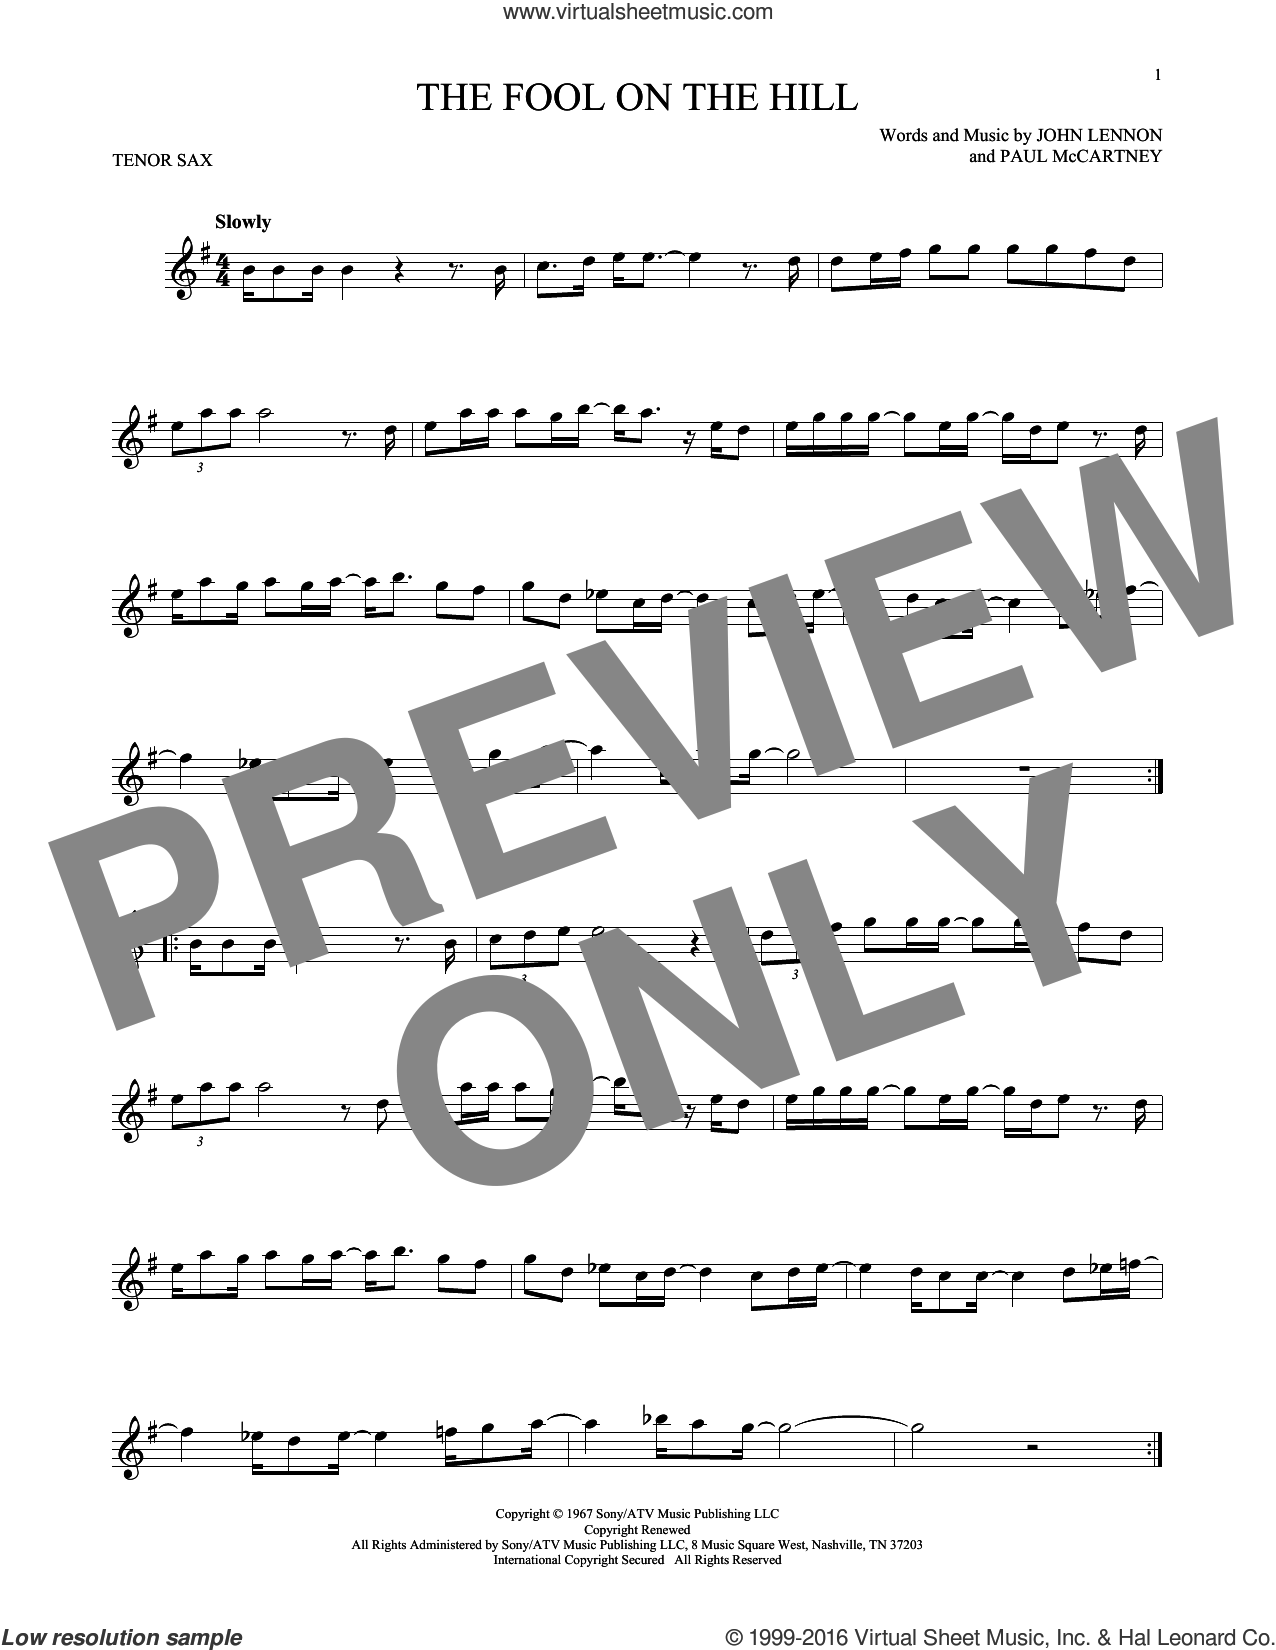 The Fool On The Hill sheet music for tenor saxophone solo by The Beatles, John Lennon and Paul McCartney, intermediate skill level